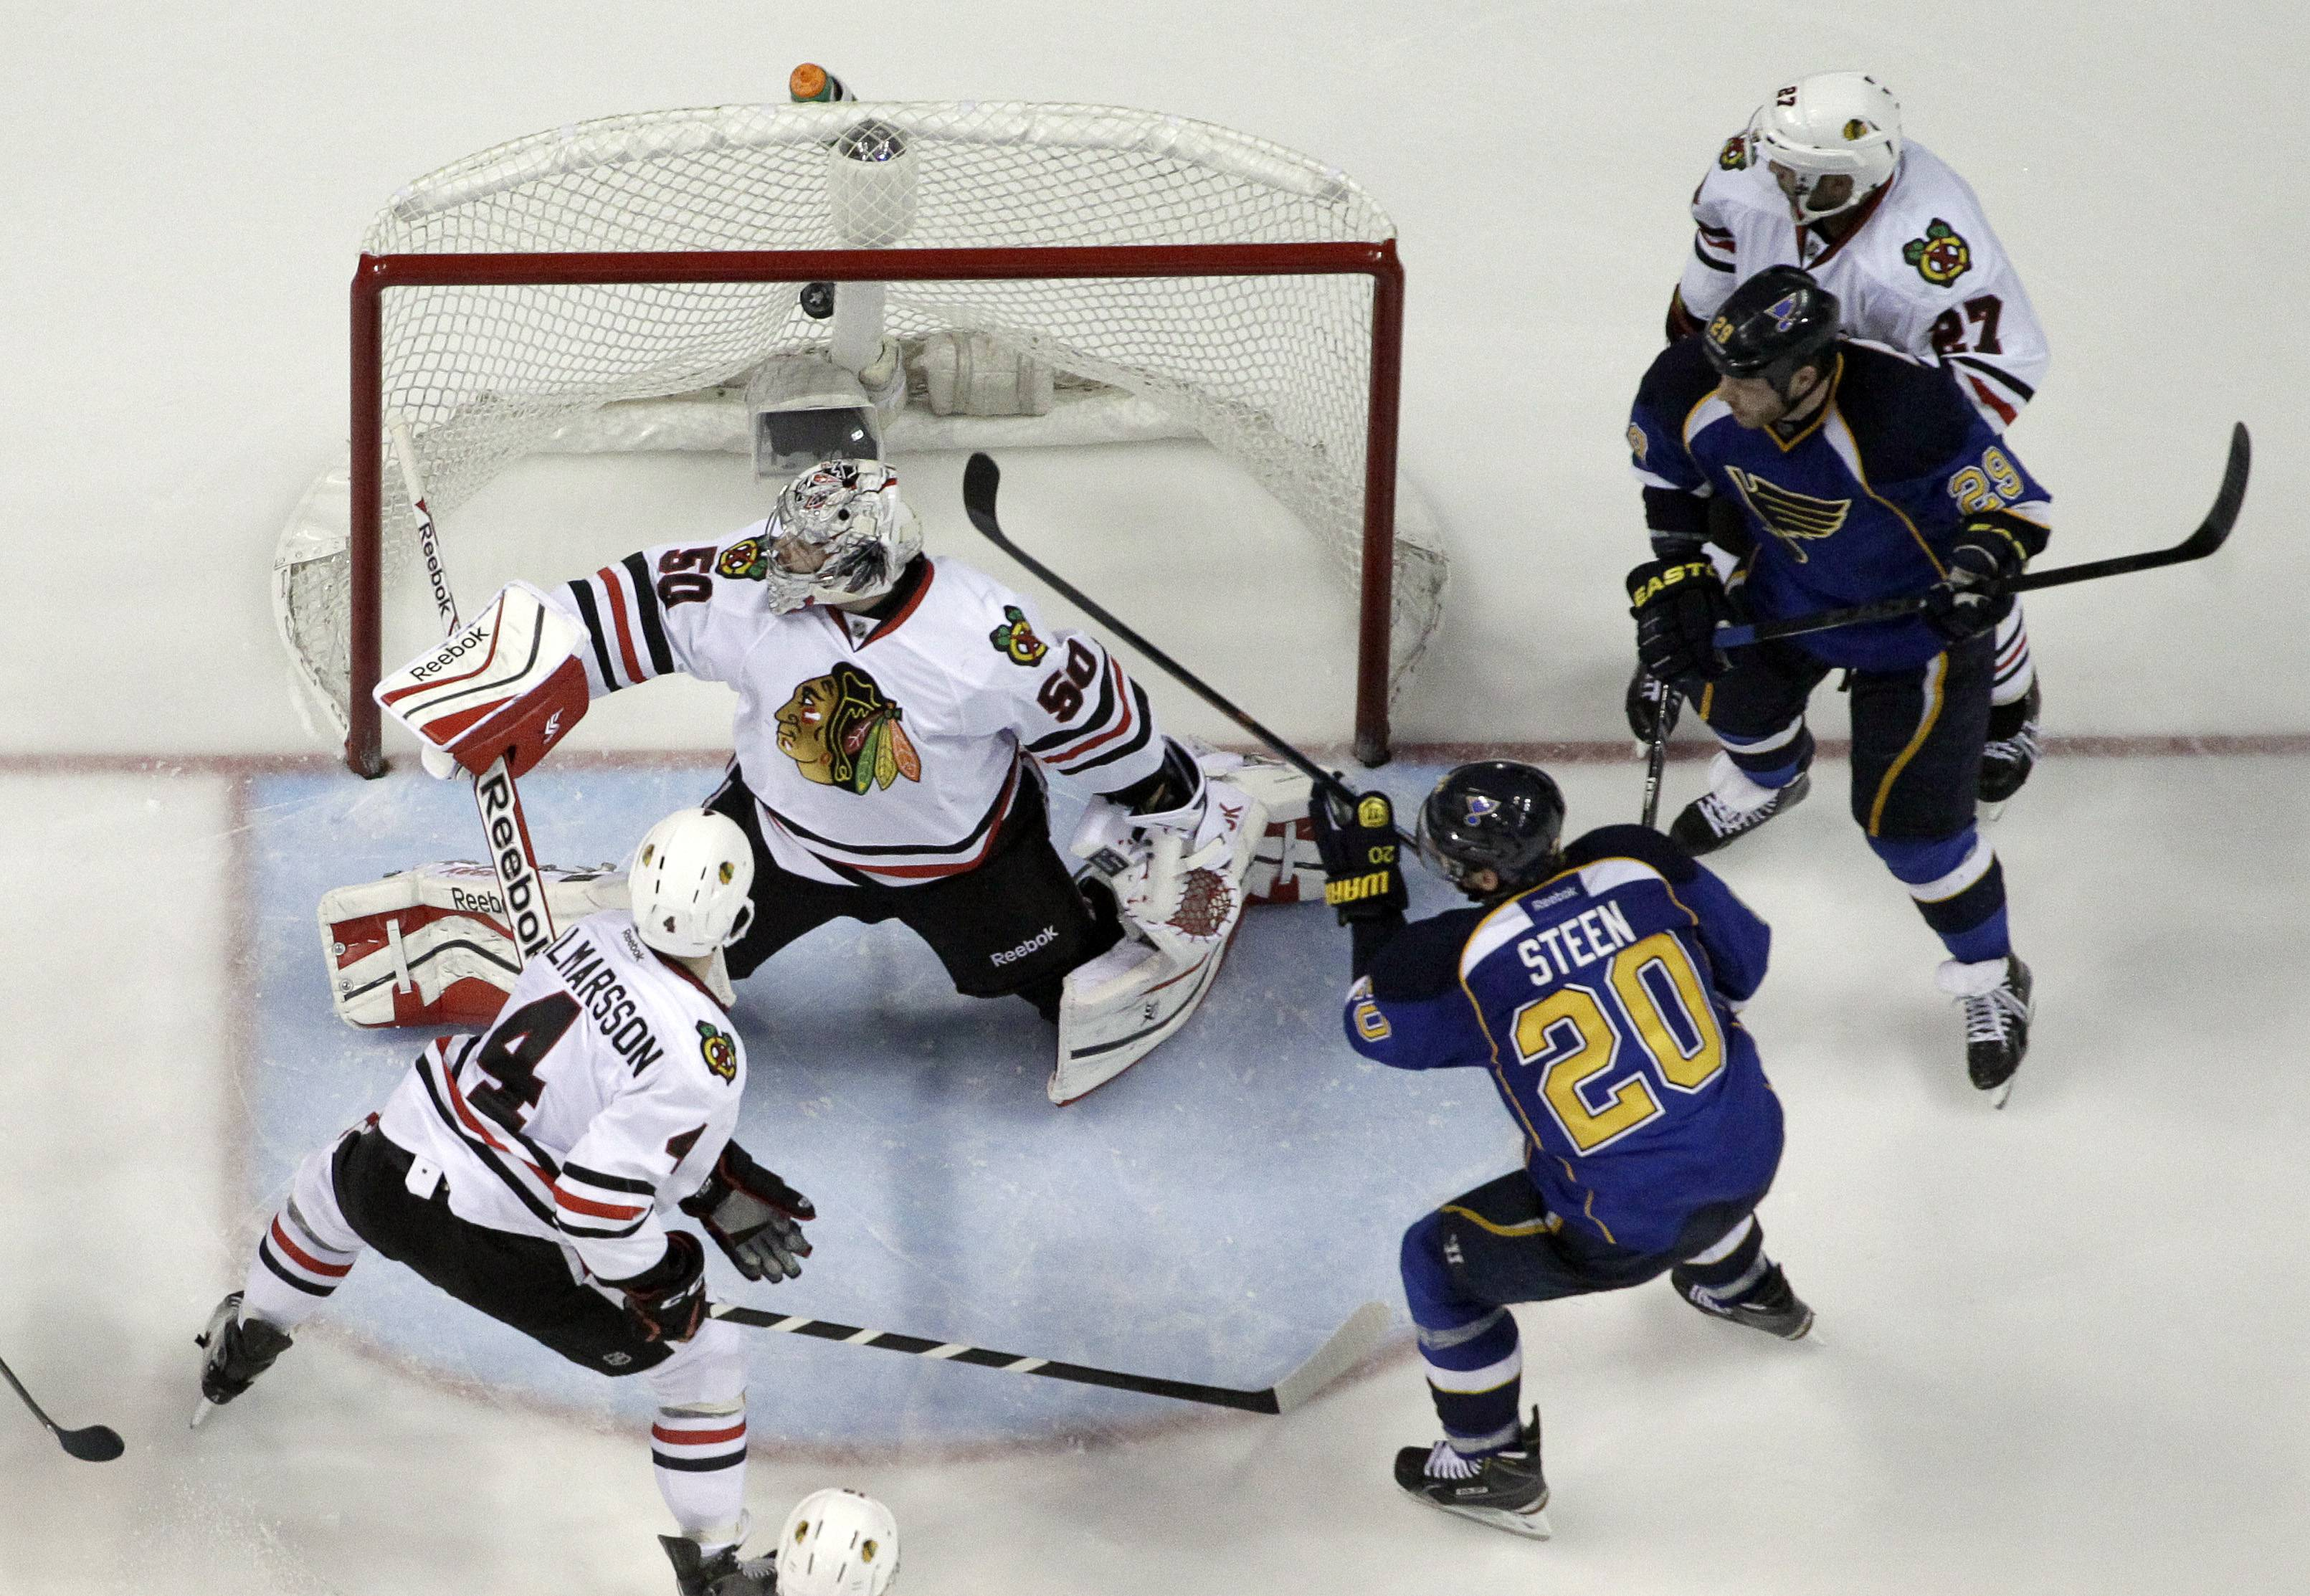 St. Louis Blues' Alexander Steen (20) scores the game-winning goal past Chicago Blackhawks goalie Corey Crawford and Niklas Hjalmarsson .The Blues won 4-3 in triple overtime.